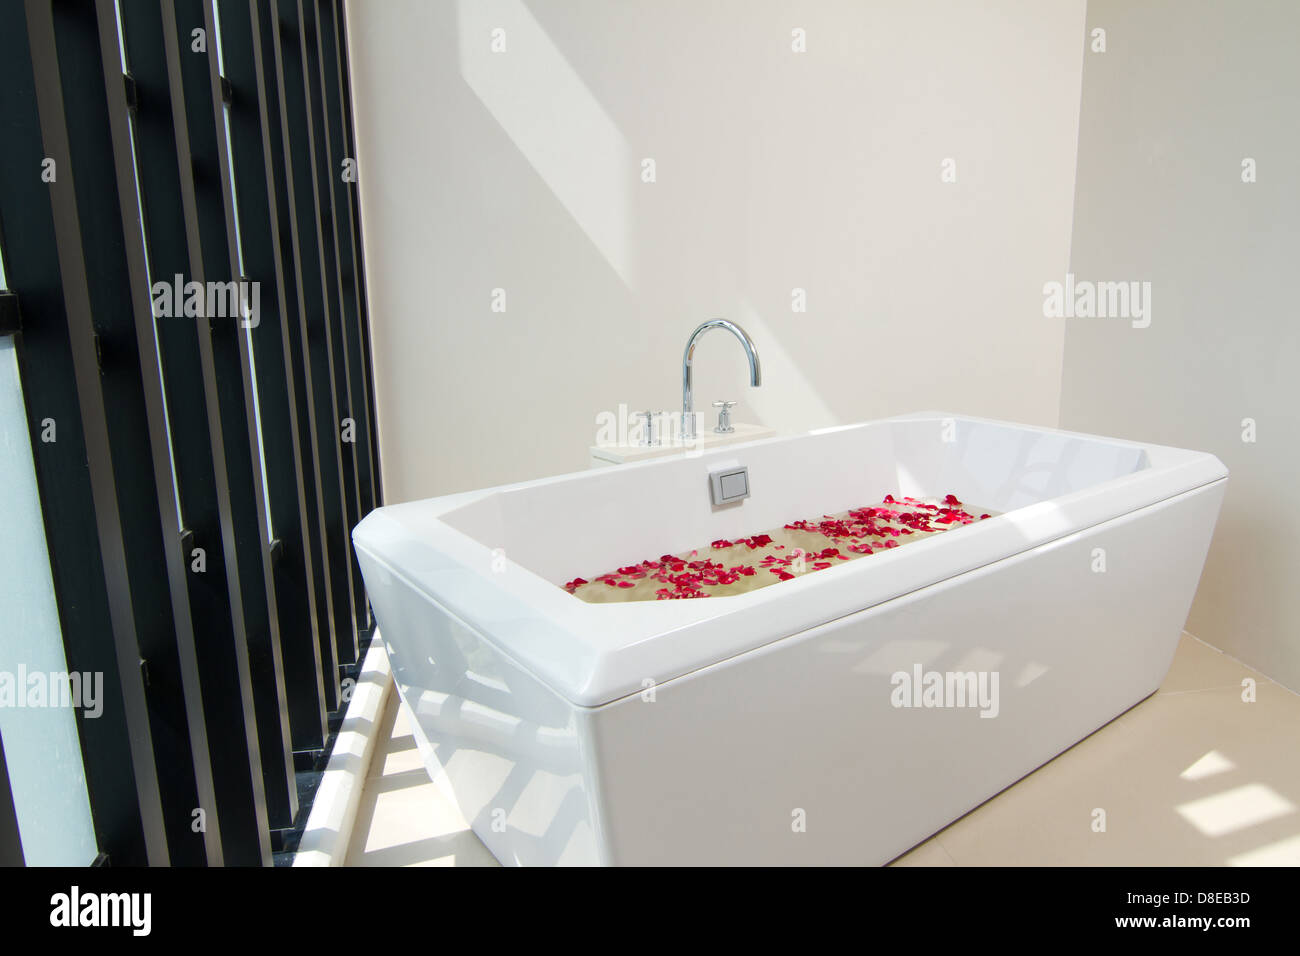 Luxury bath tub with water and flowers Stock Photo: 56864401 - Alamy